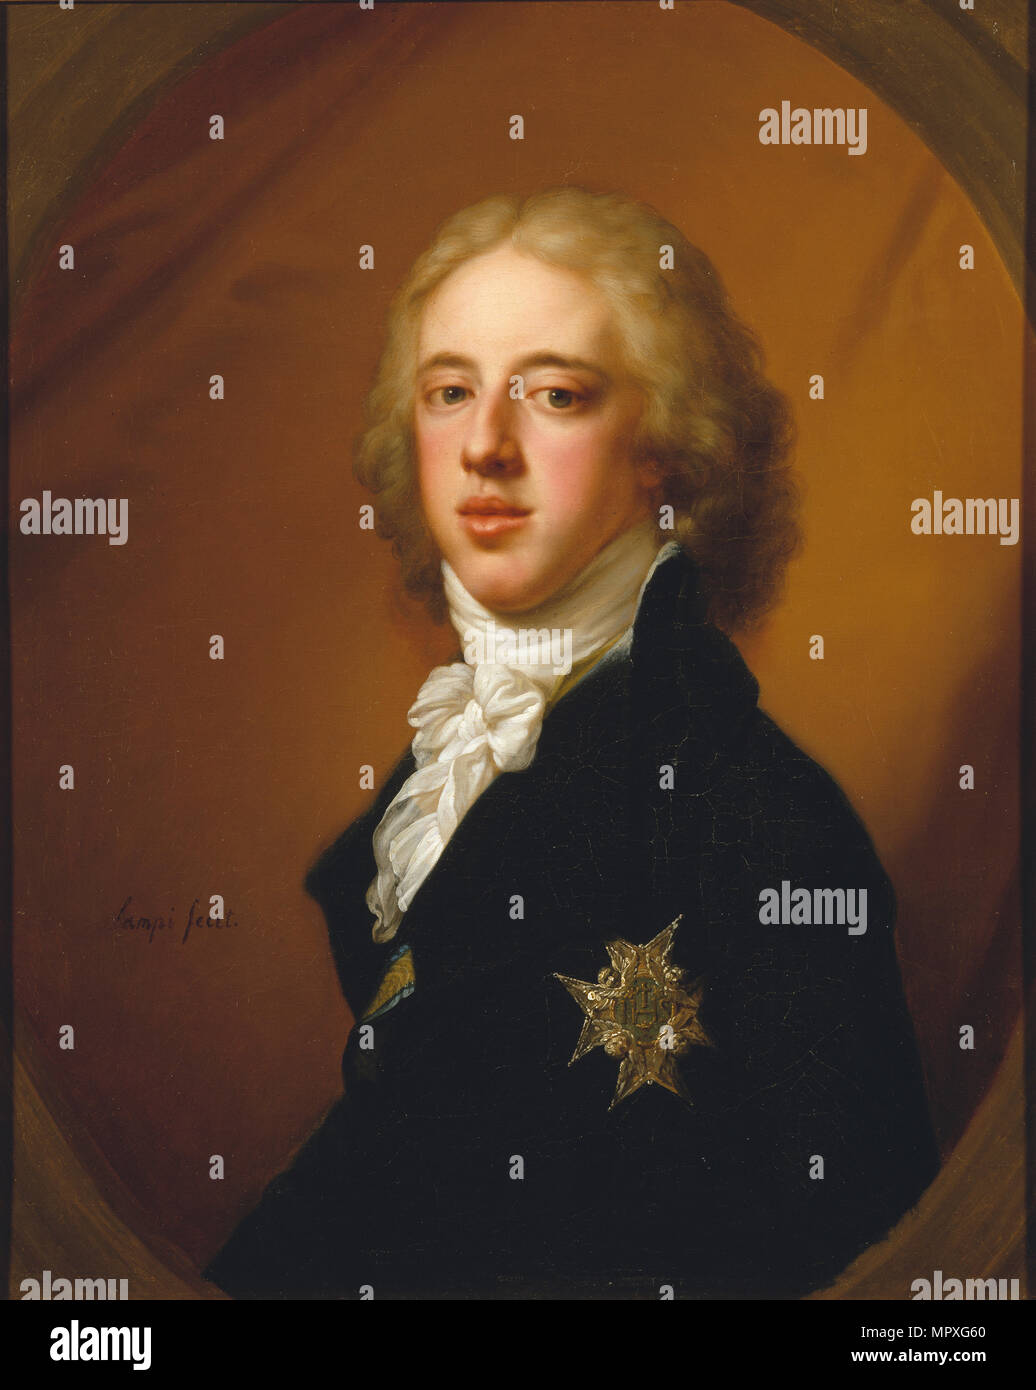 Portrait of Gustav IV Adolf of Sweden (1778-1837). Stock Photo